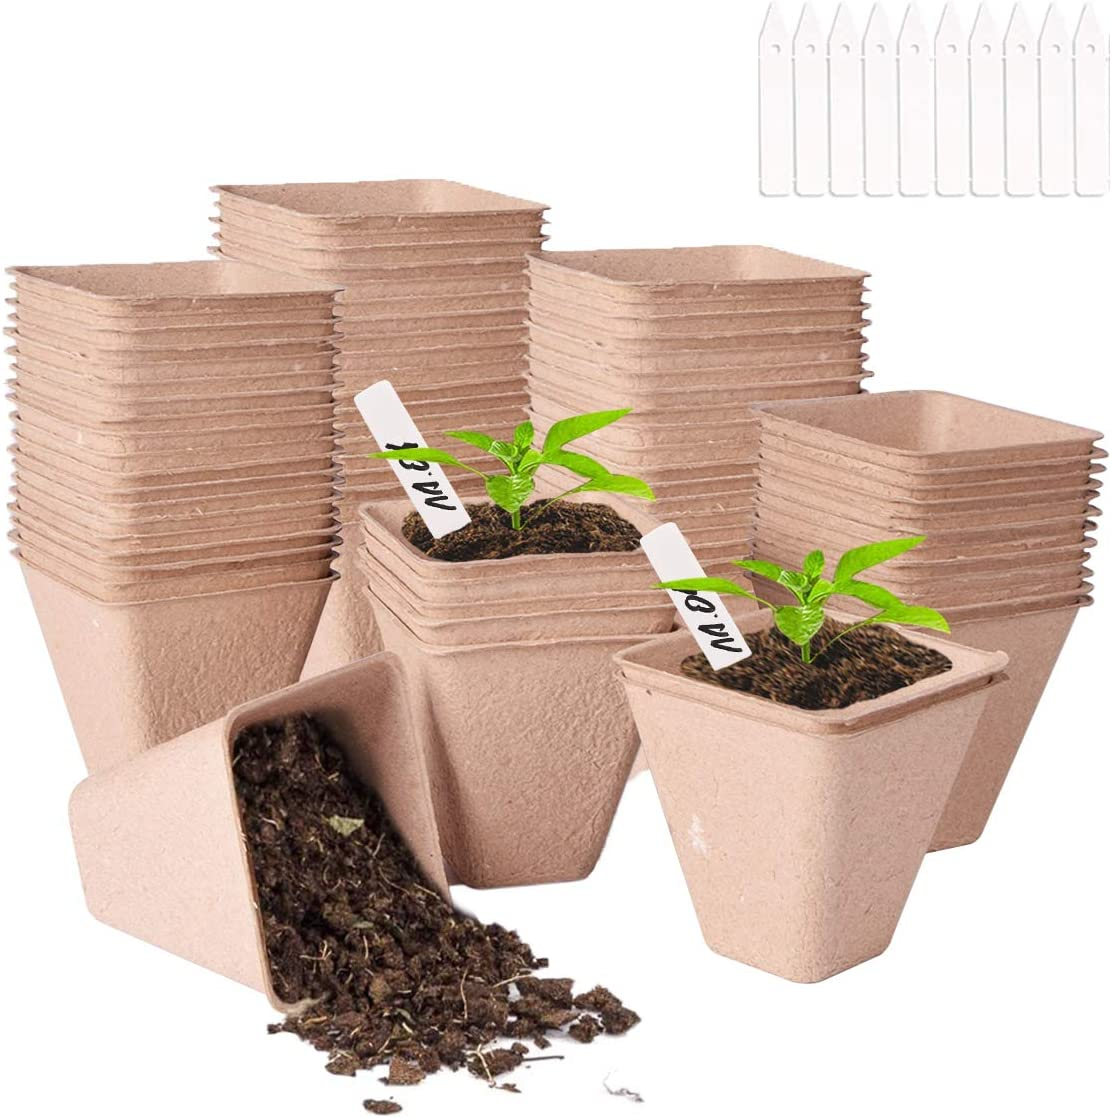 3.15'' Seed Starter Peat Pots Kit for Garden, ANGSOU 40 Pack 100% Eco-Friendly Organic Germination Seedling Trays with 10 Plastic Plant Labels (40 Pack, 3.15'')